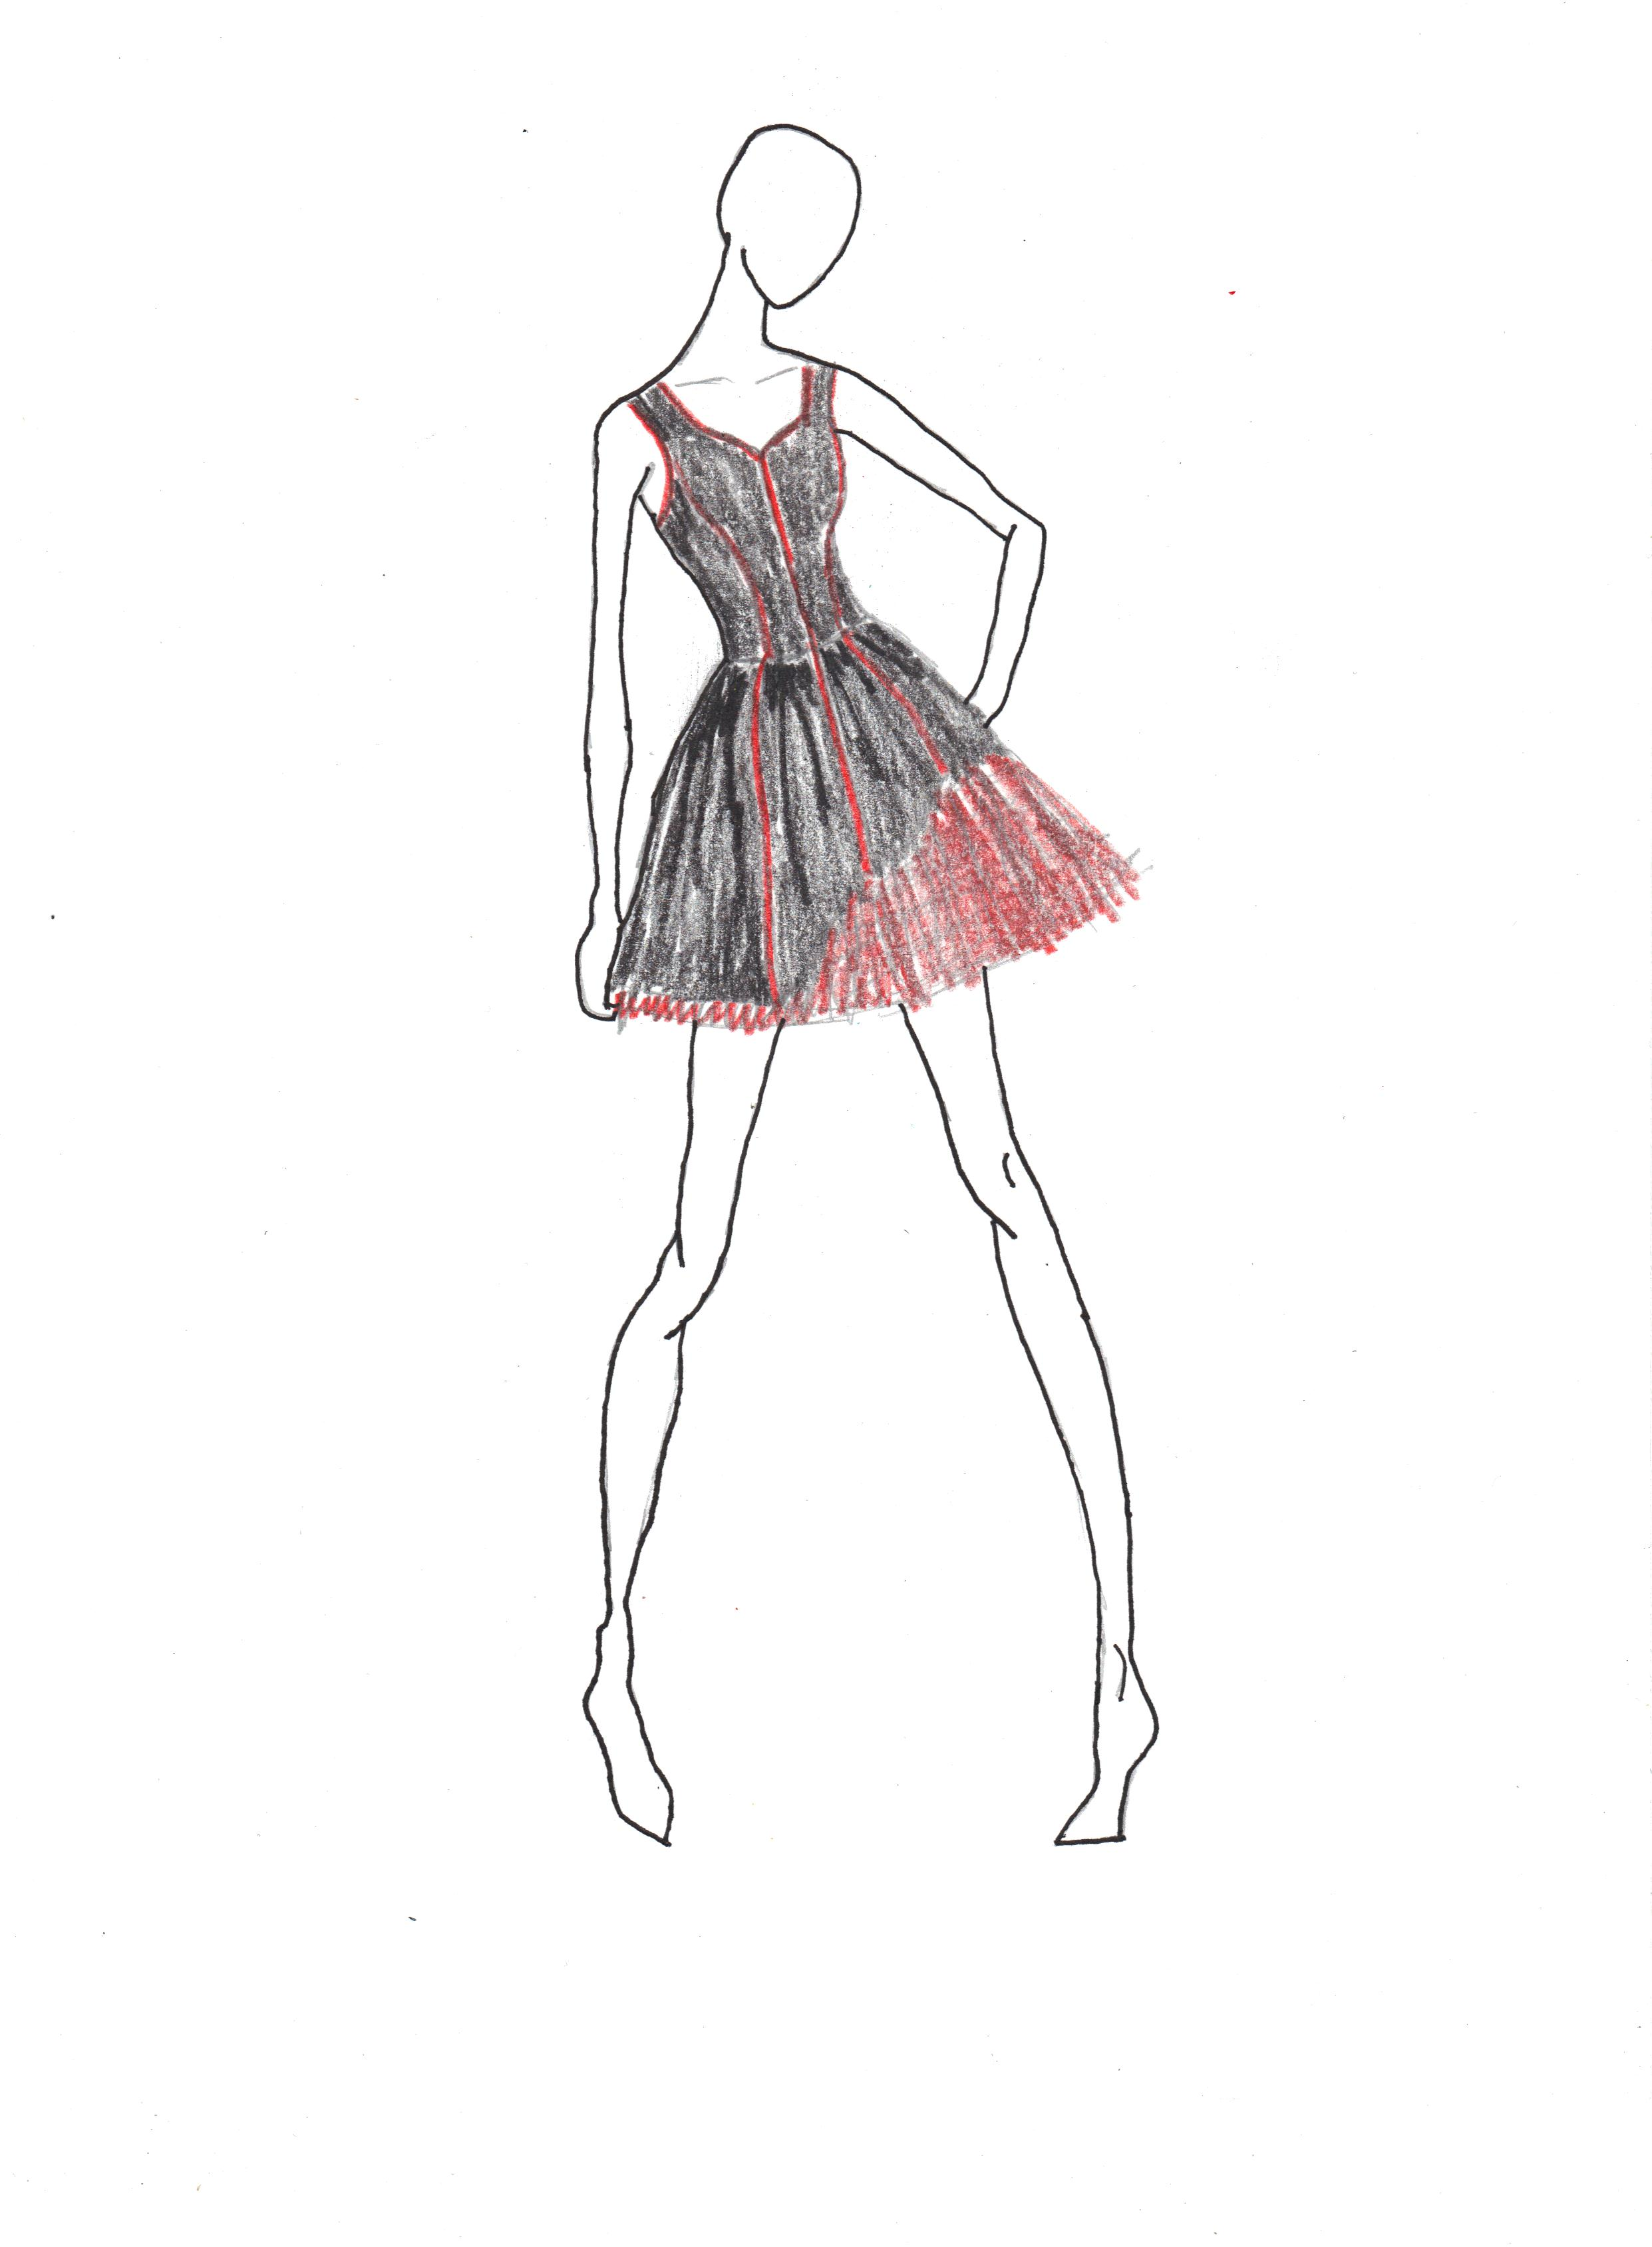 Equipment Silk Polkadot Top further 399000 moreover Costume Jewelry New Spring Trend 2017 together with Womens Fashion Sketch Templates together with 934988. on asymmetrical skirt